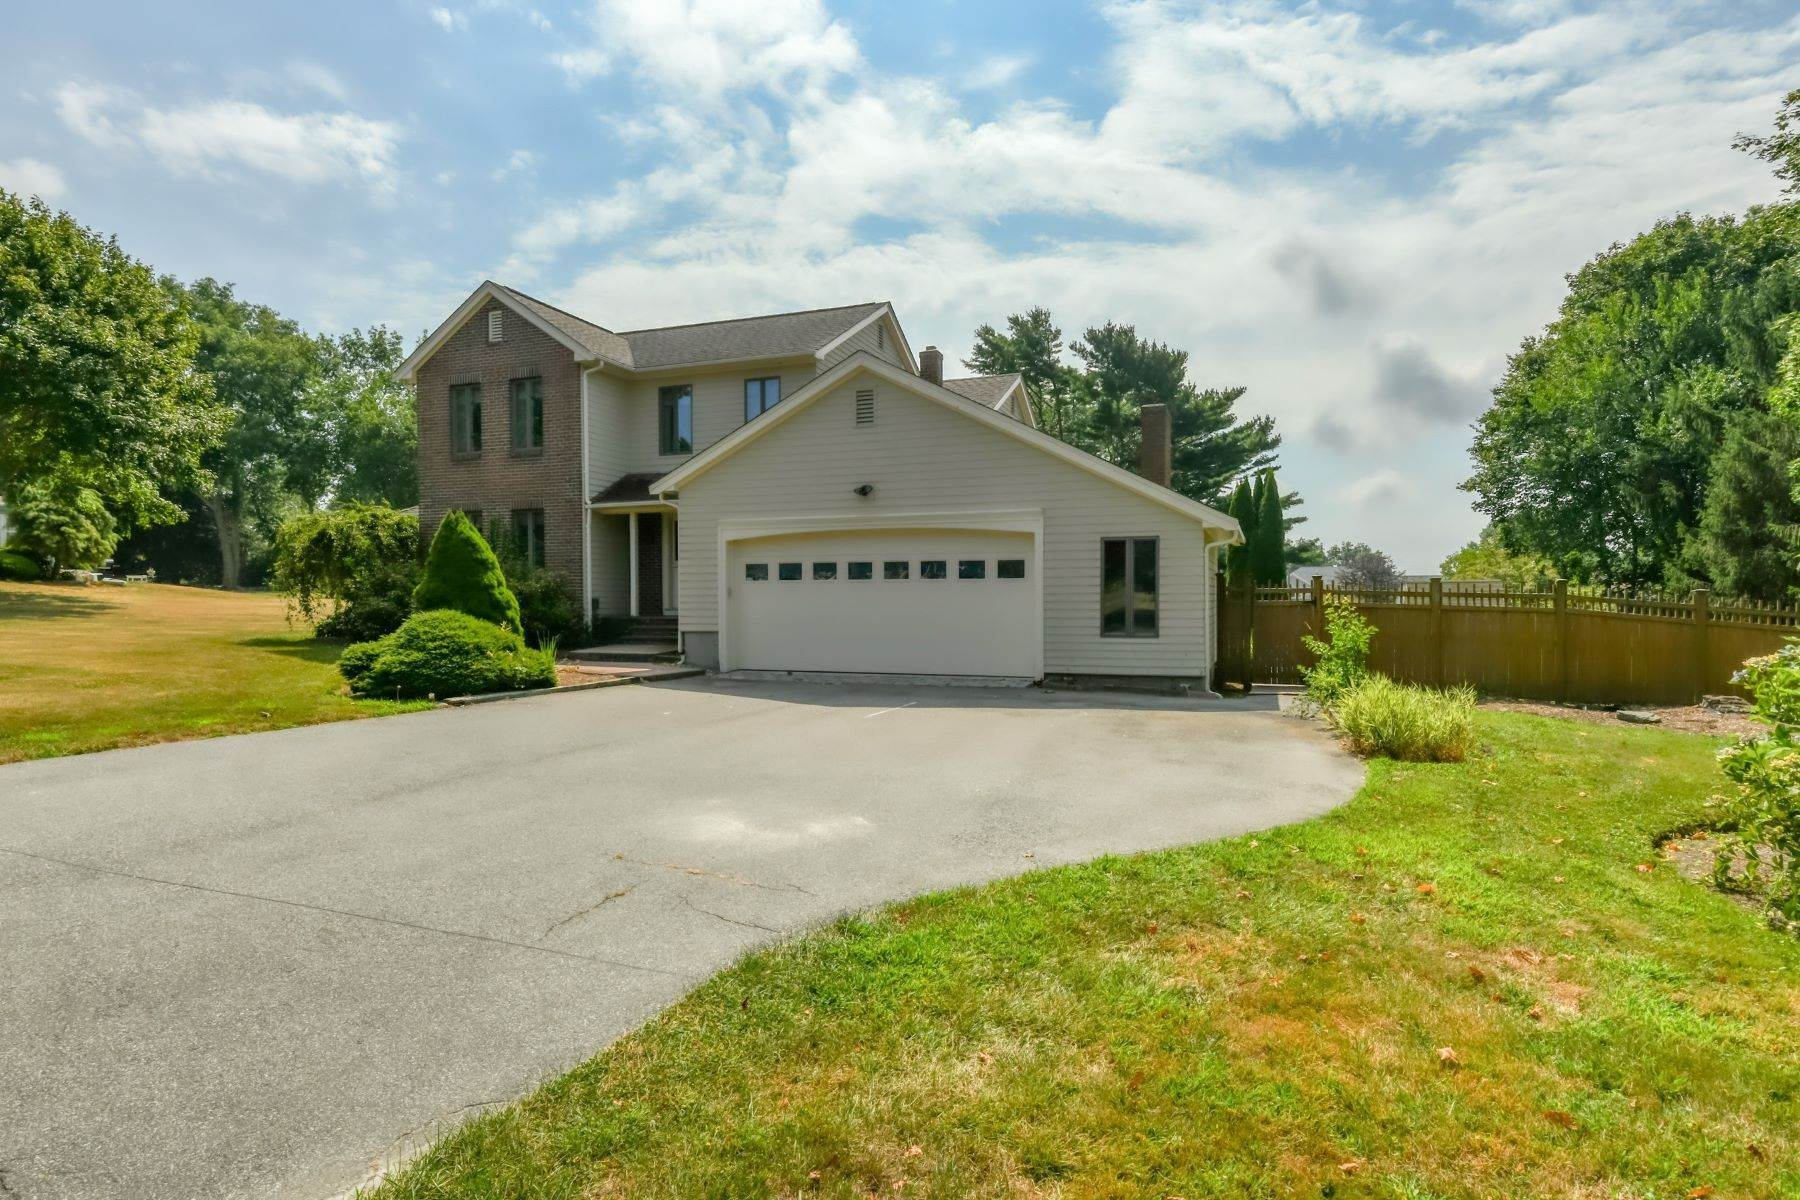 Single Family Homes for Sale at Quiet Colonial with Backyard Pool 48 Island View Drive Tiverton, Rhode Island 02878 United States